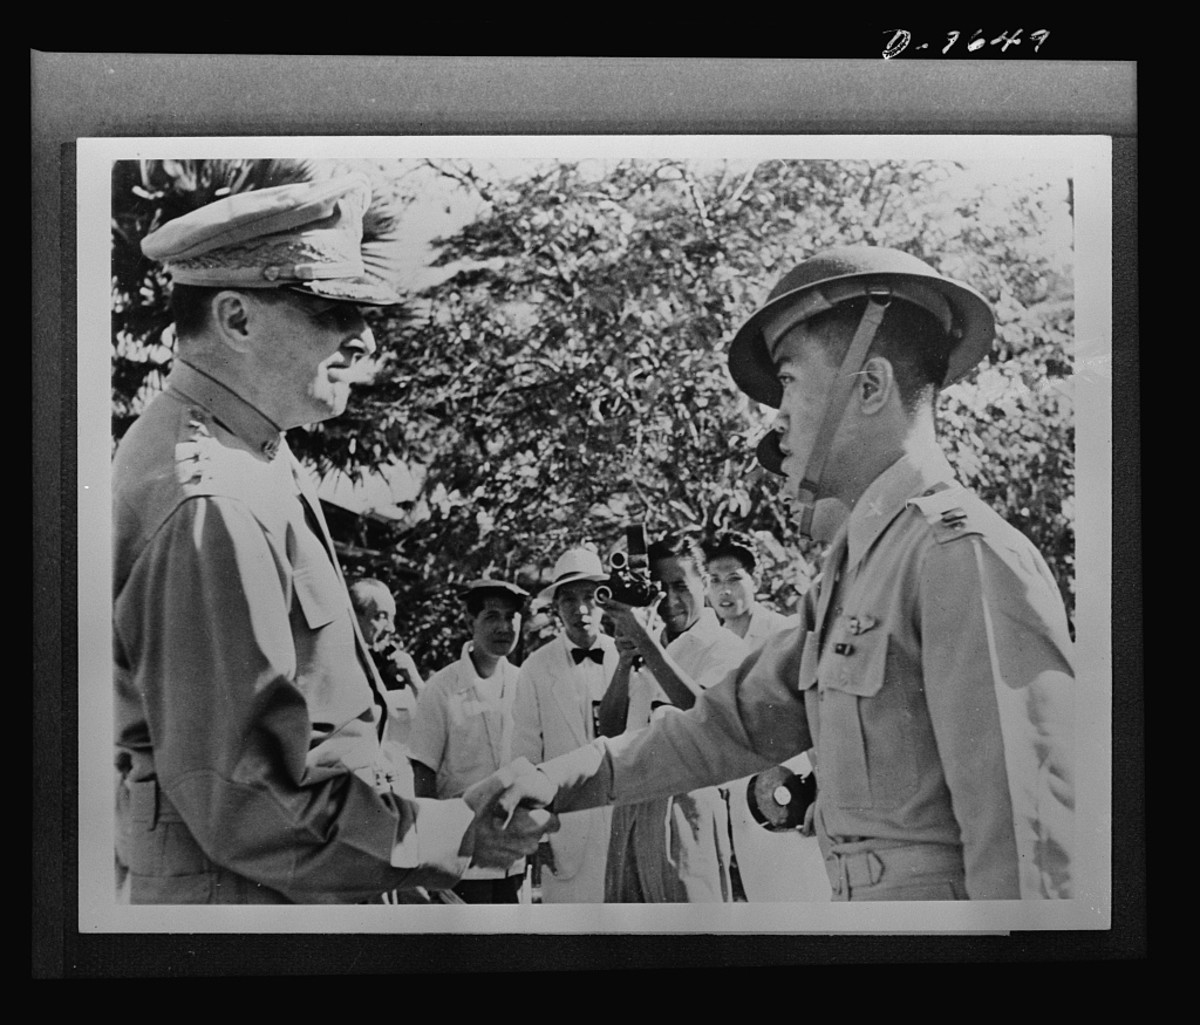 General Douglas MacArthur, left, congratulates Captain Villamor of the Philippine Air Force, after awarding him the Distinguished Service Cross, December 22, 1941.